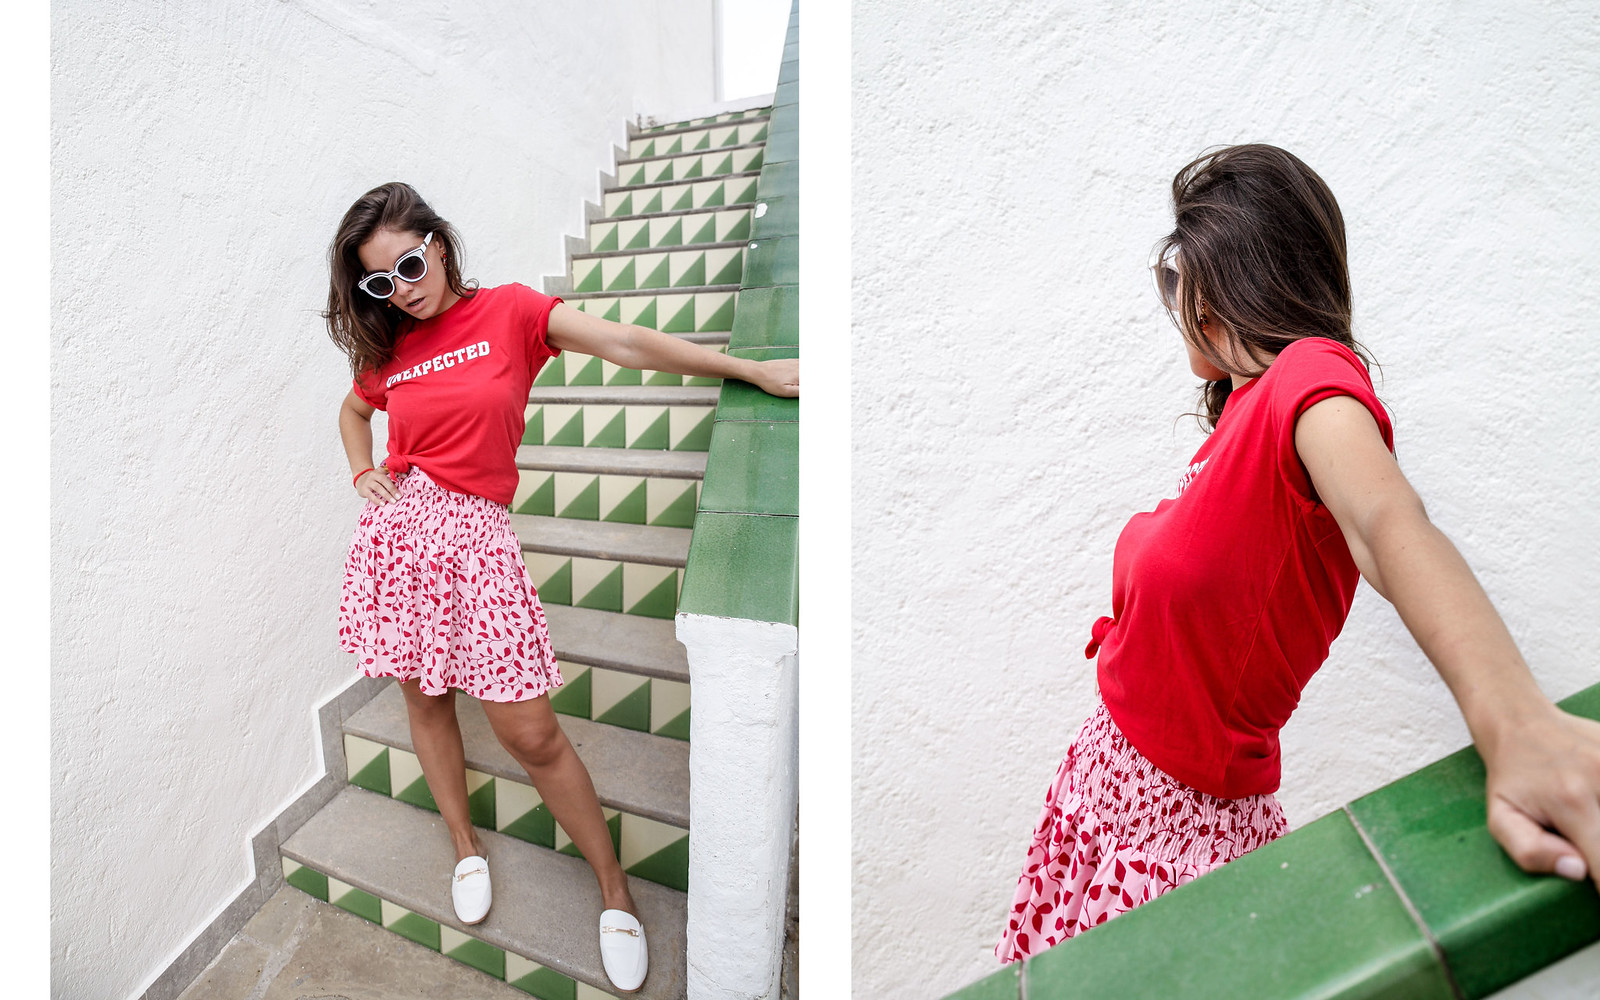 08_falda_NAKD_descuento_shop_online_theguestgirl_morinko_red_shirt_unexpected_influencer_barcelona_blogger